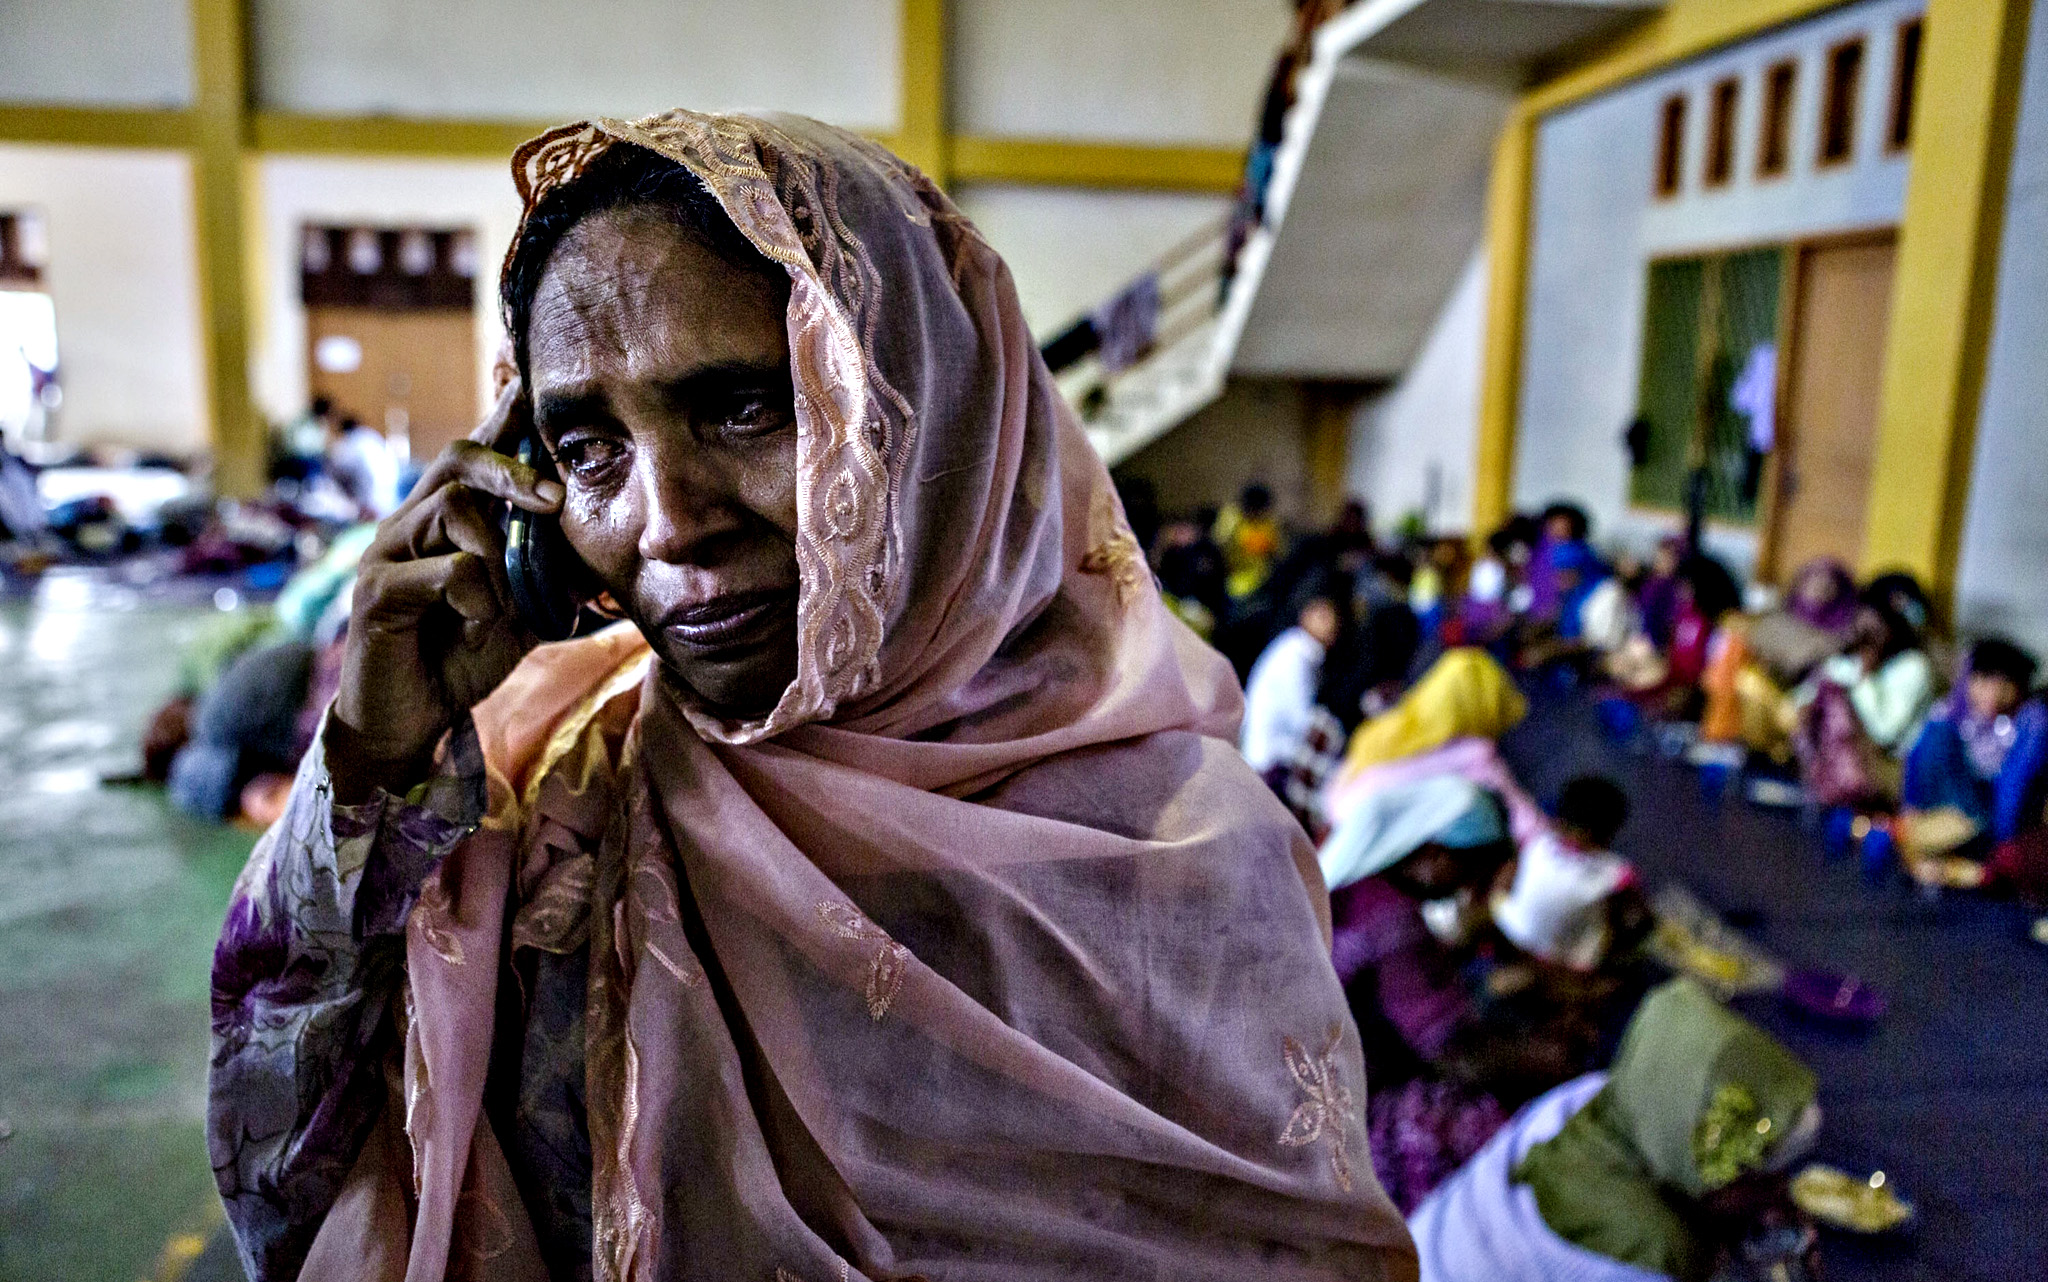 An Rohingya woman, Samsidah Begom binti Abdul Syukur, cries as make a phone call to her son in Malaysia at a shelter on Tuesday in Lhoksukon, Aceh province, Indonesia. Boats carrying over 500 of Myanmar's Rohingya refugees have arrived in Indonesia, many requiring medical attention. They have warned that thousands more are thought to be still at sea. Myanmar's Rohingya Muslim community have long been persecuted and marginalized by Myanmar's mostly Buddhist population